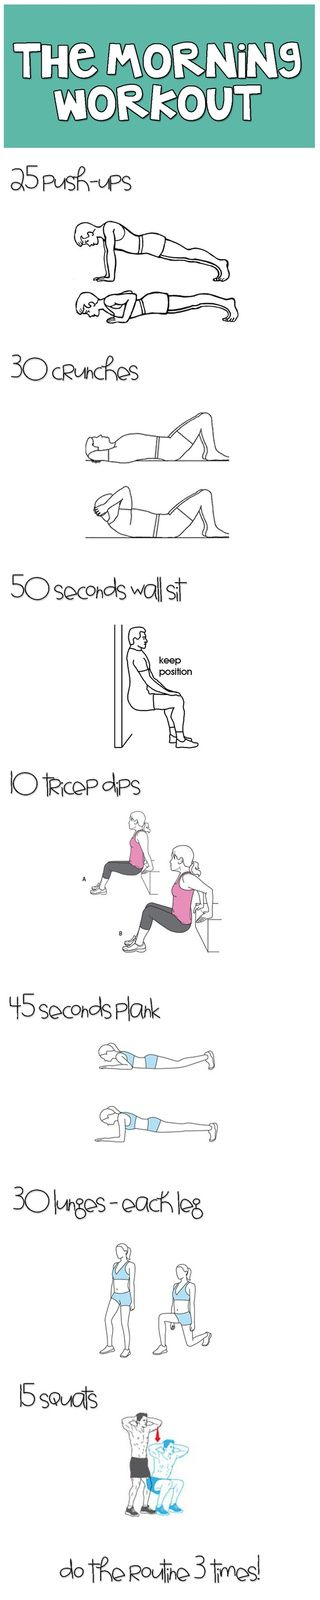 3 sets of 30 lunges - each leg!  Just that alone is a workout.  I'm going to start with 3 lunges and see if I can work up to 30 :)